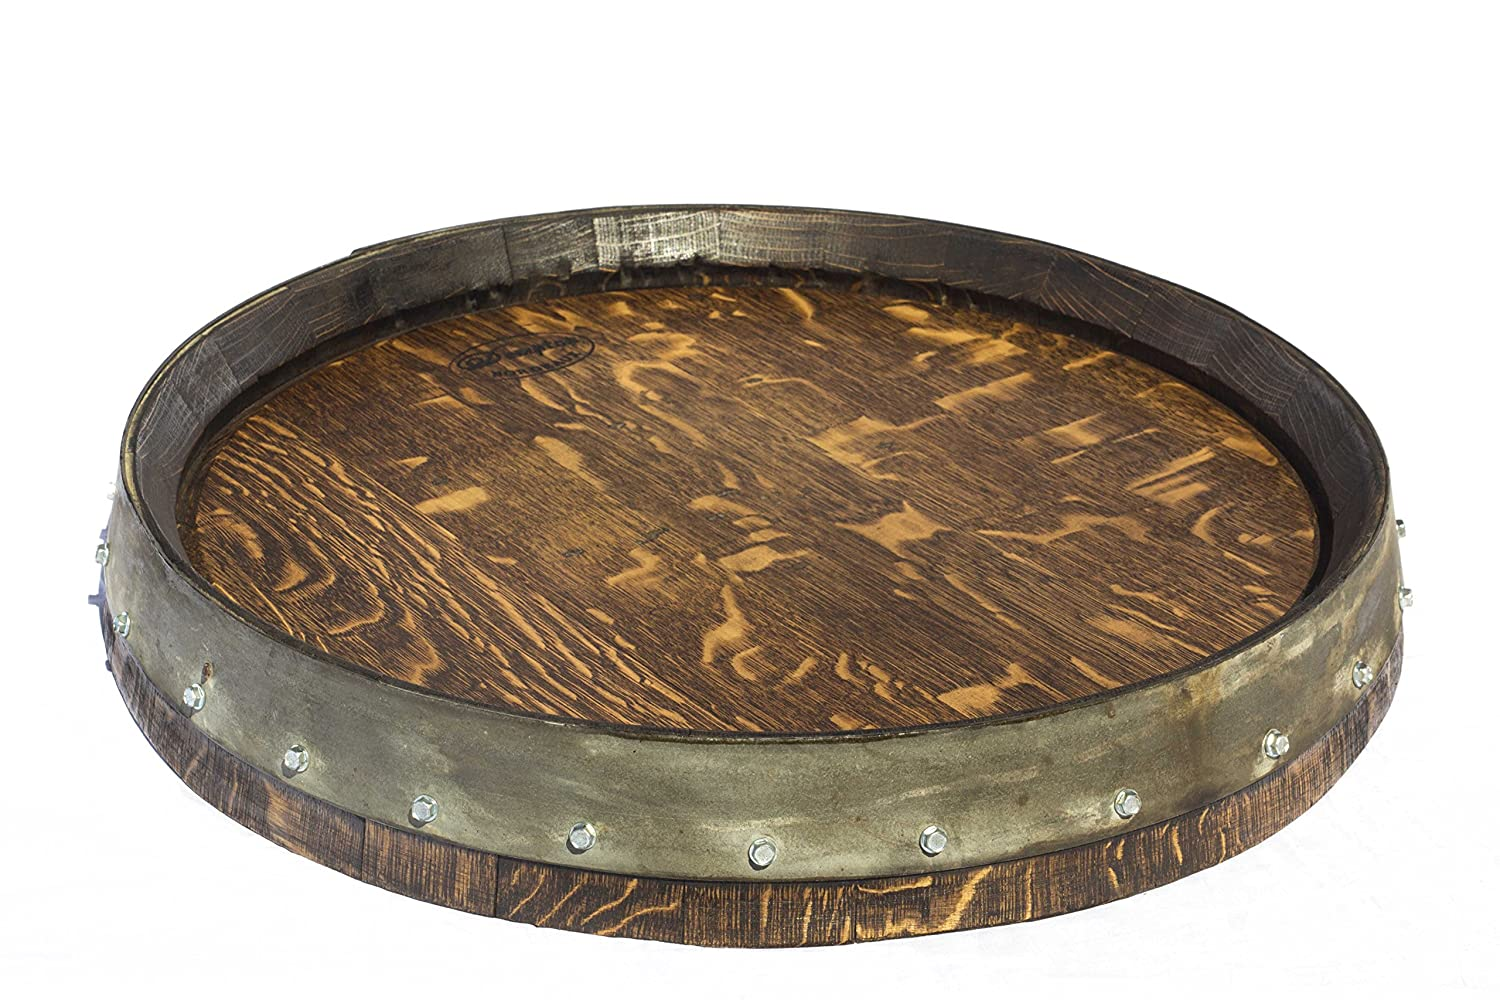 Amazoncom Barrel Head Lazy Susan Featuring Galvanized Steel